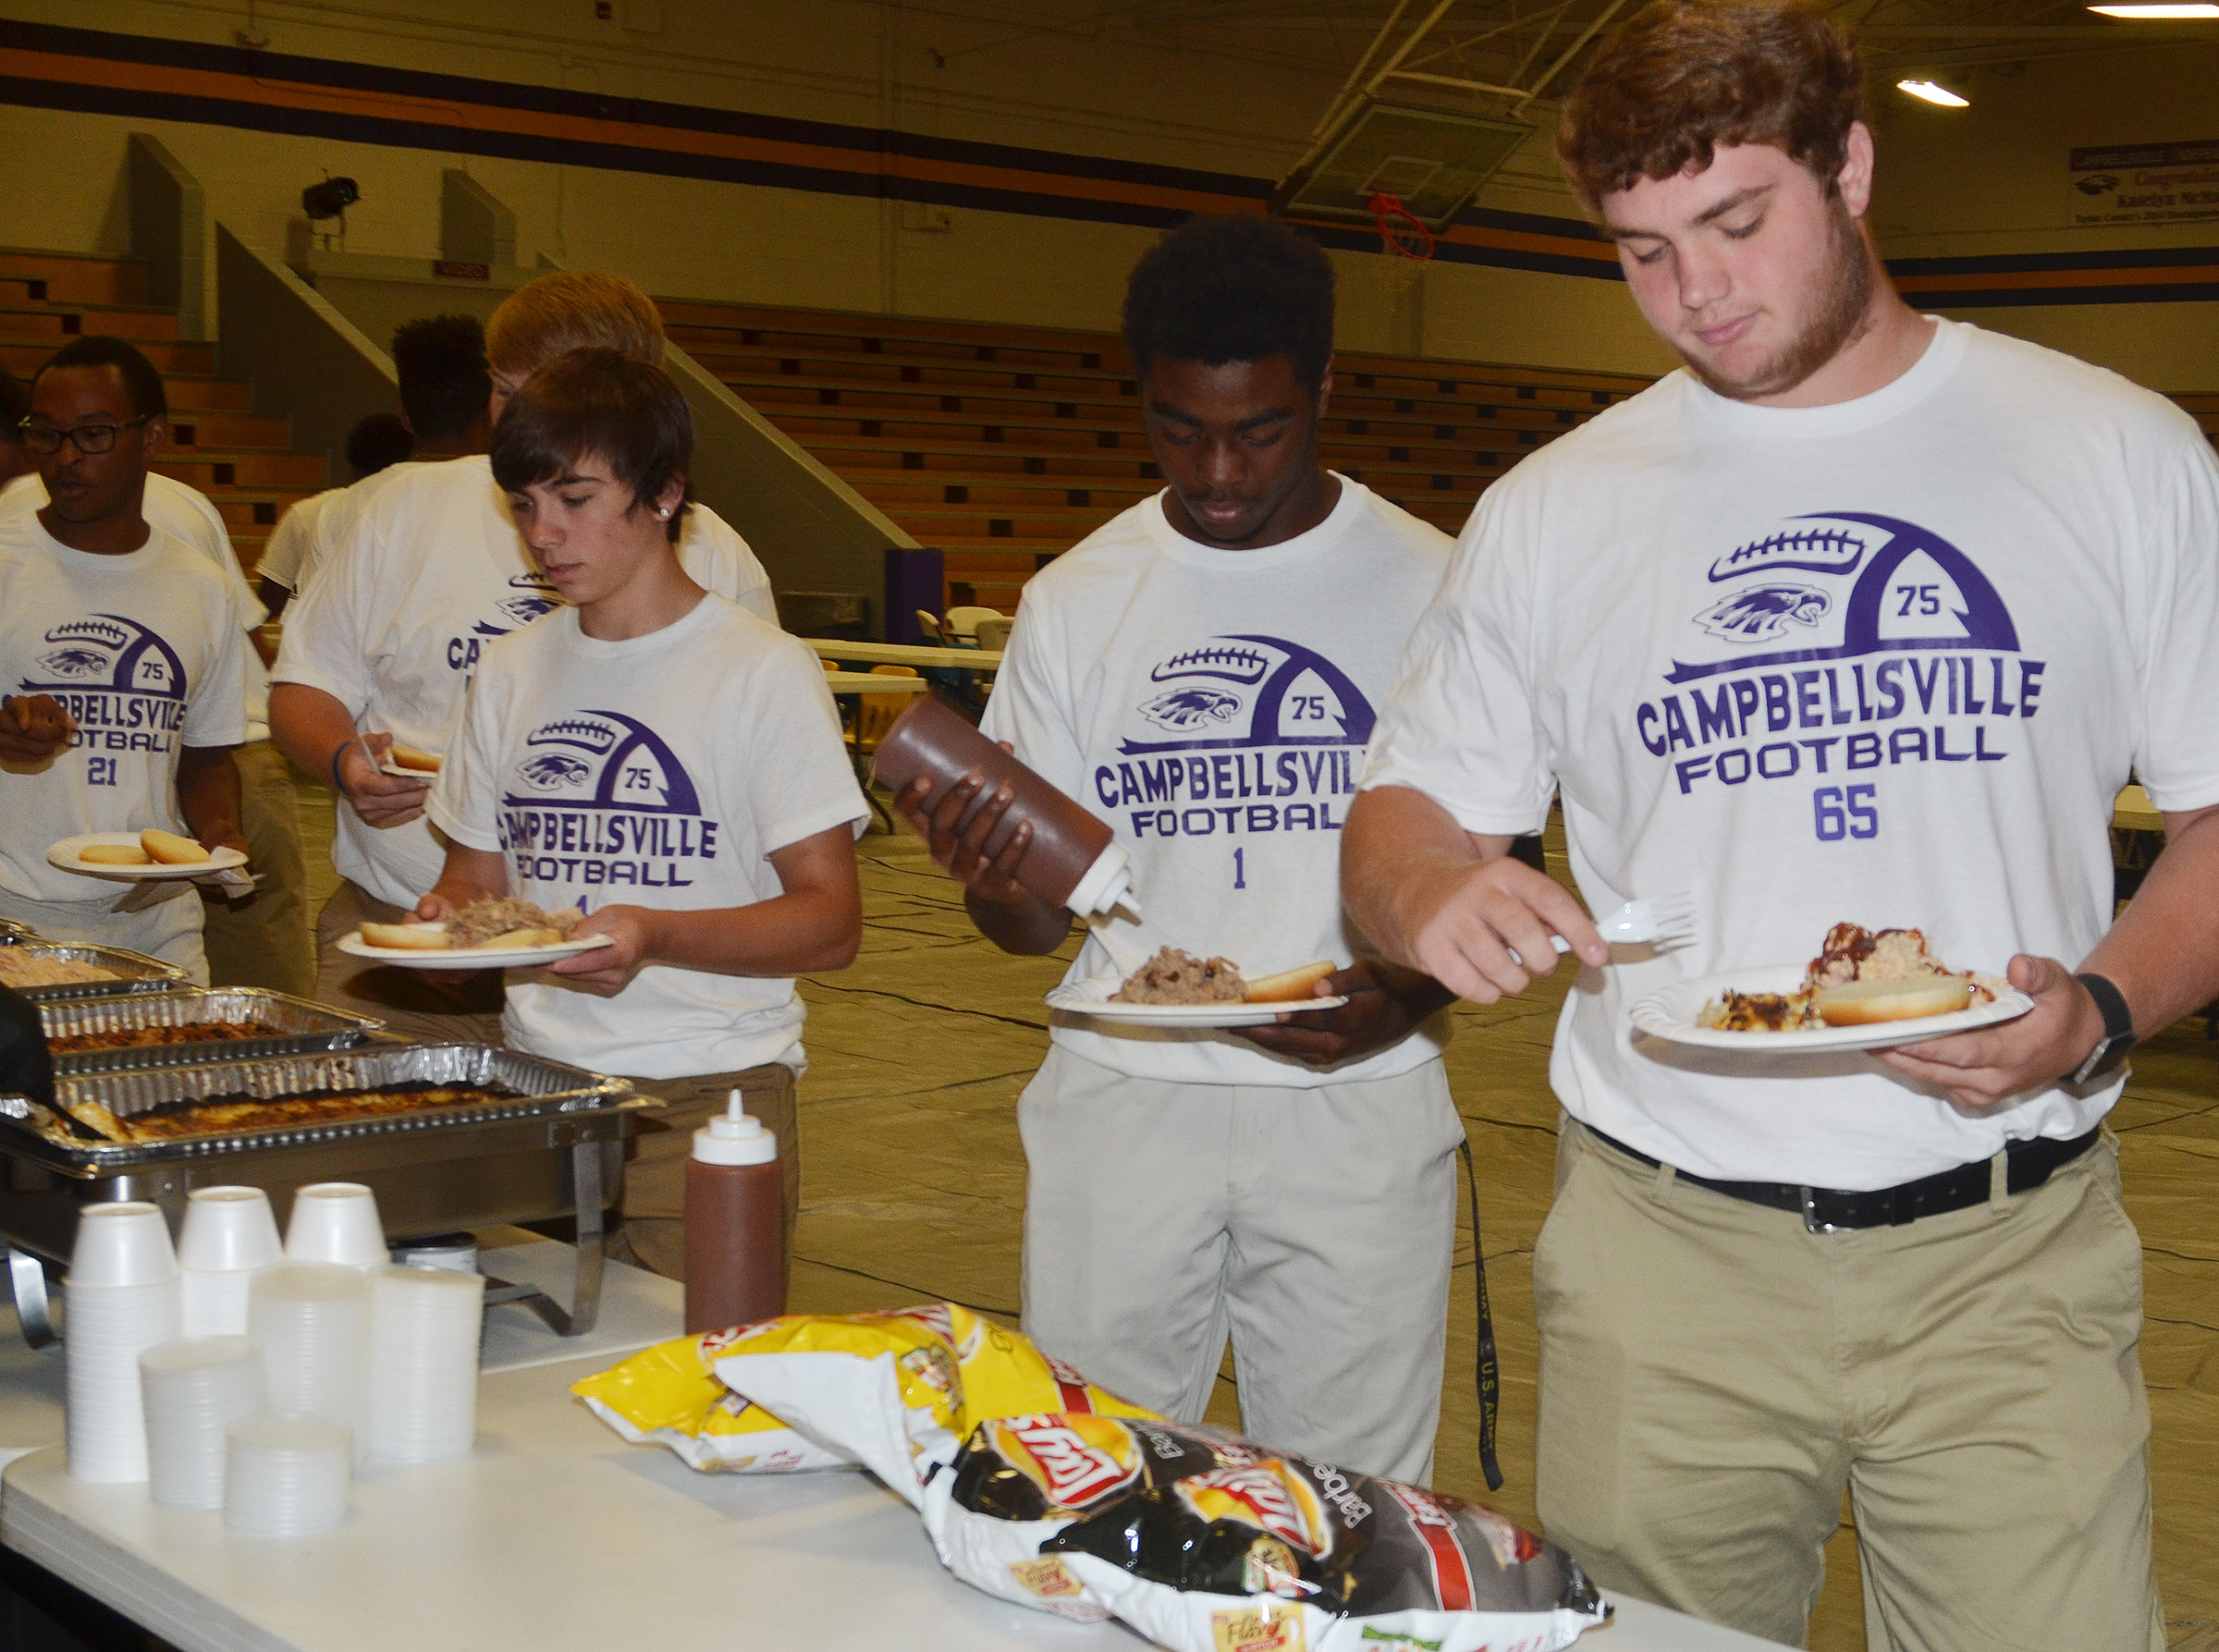 CHS junior Lane Bottoms, at right, and his teammates eat at the annual CHS football dinner and auction.